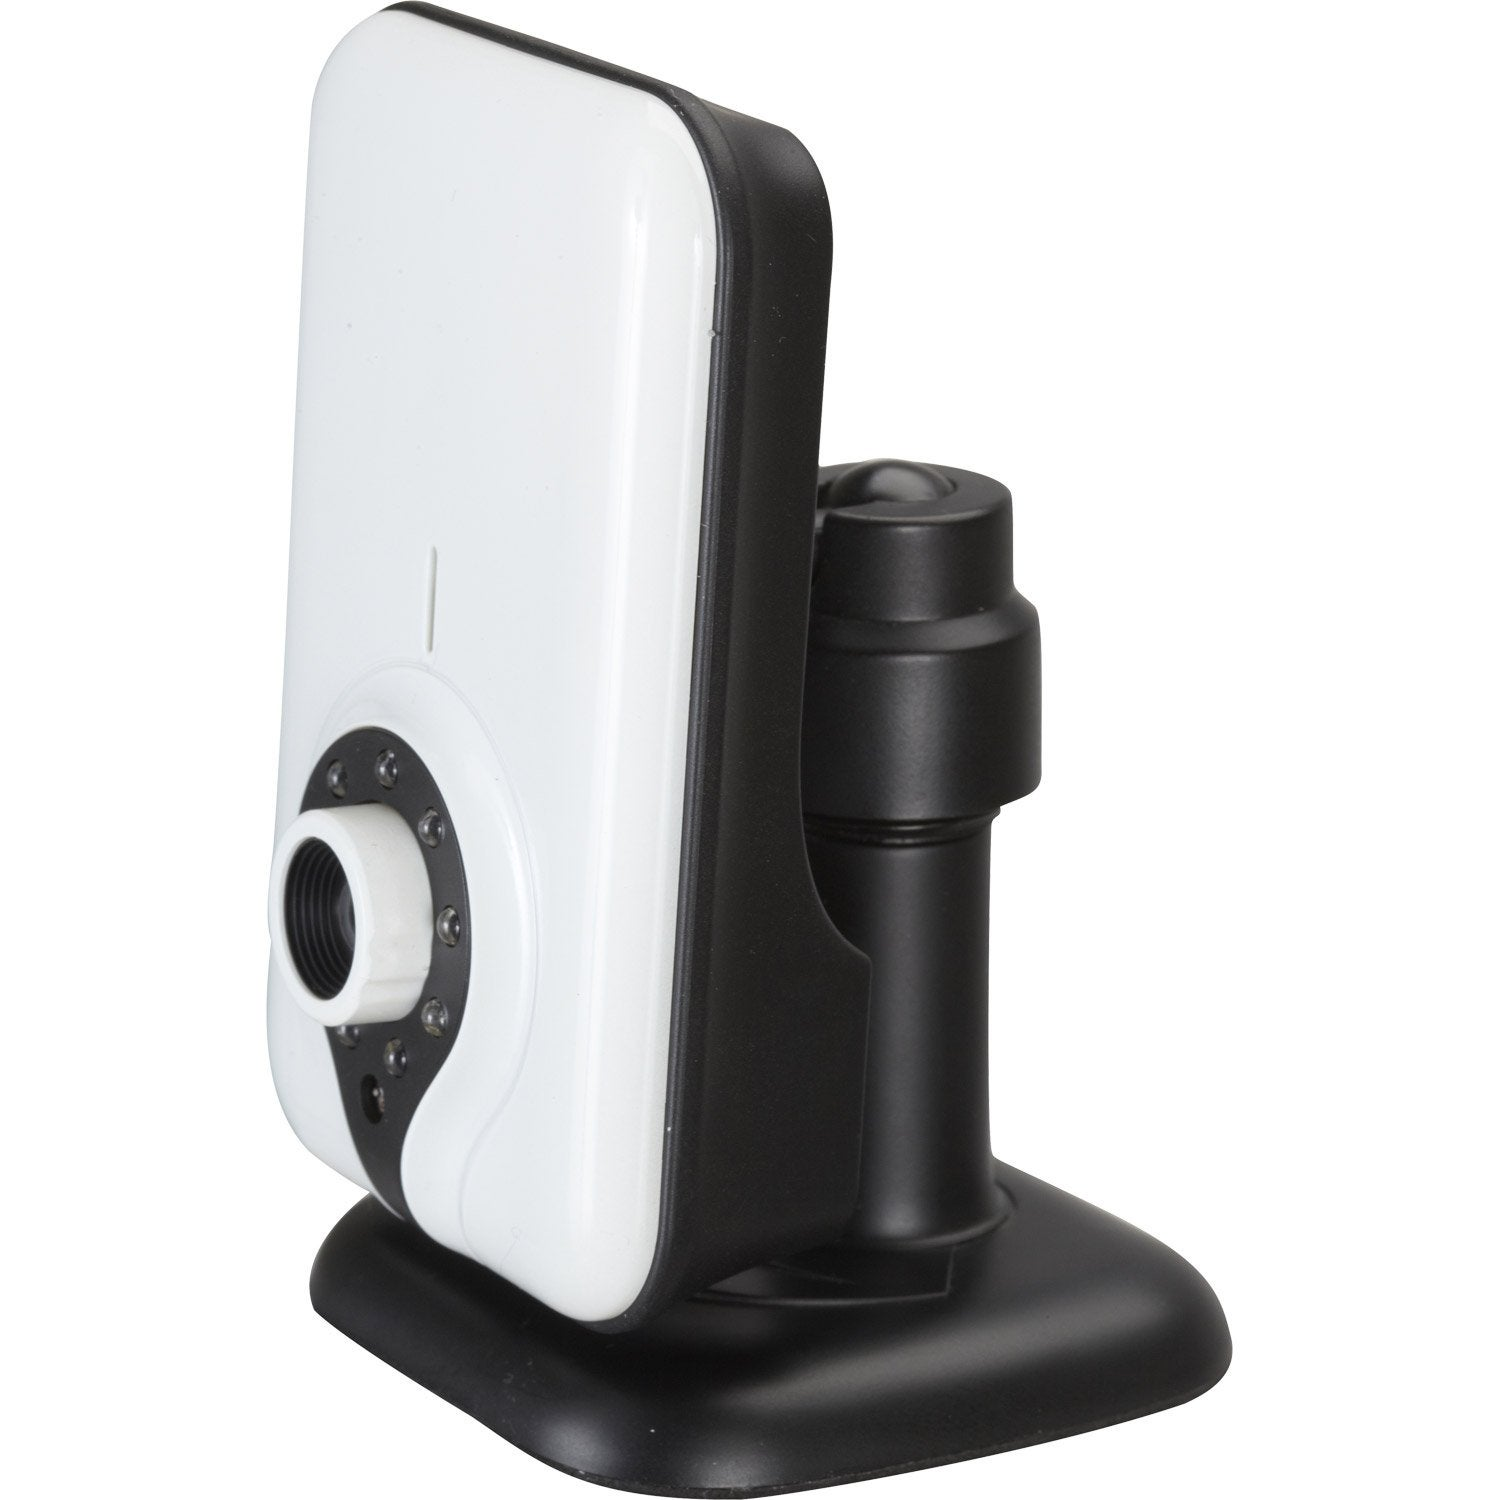 Camera de surveillance ip elro - Camera factice leroy merlin ...